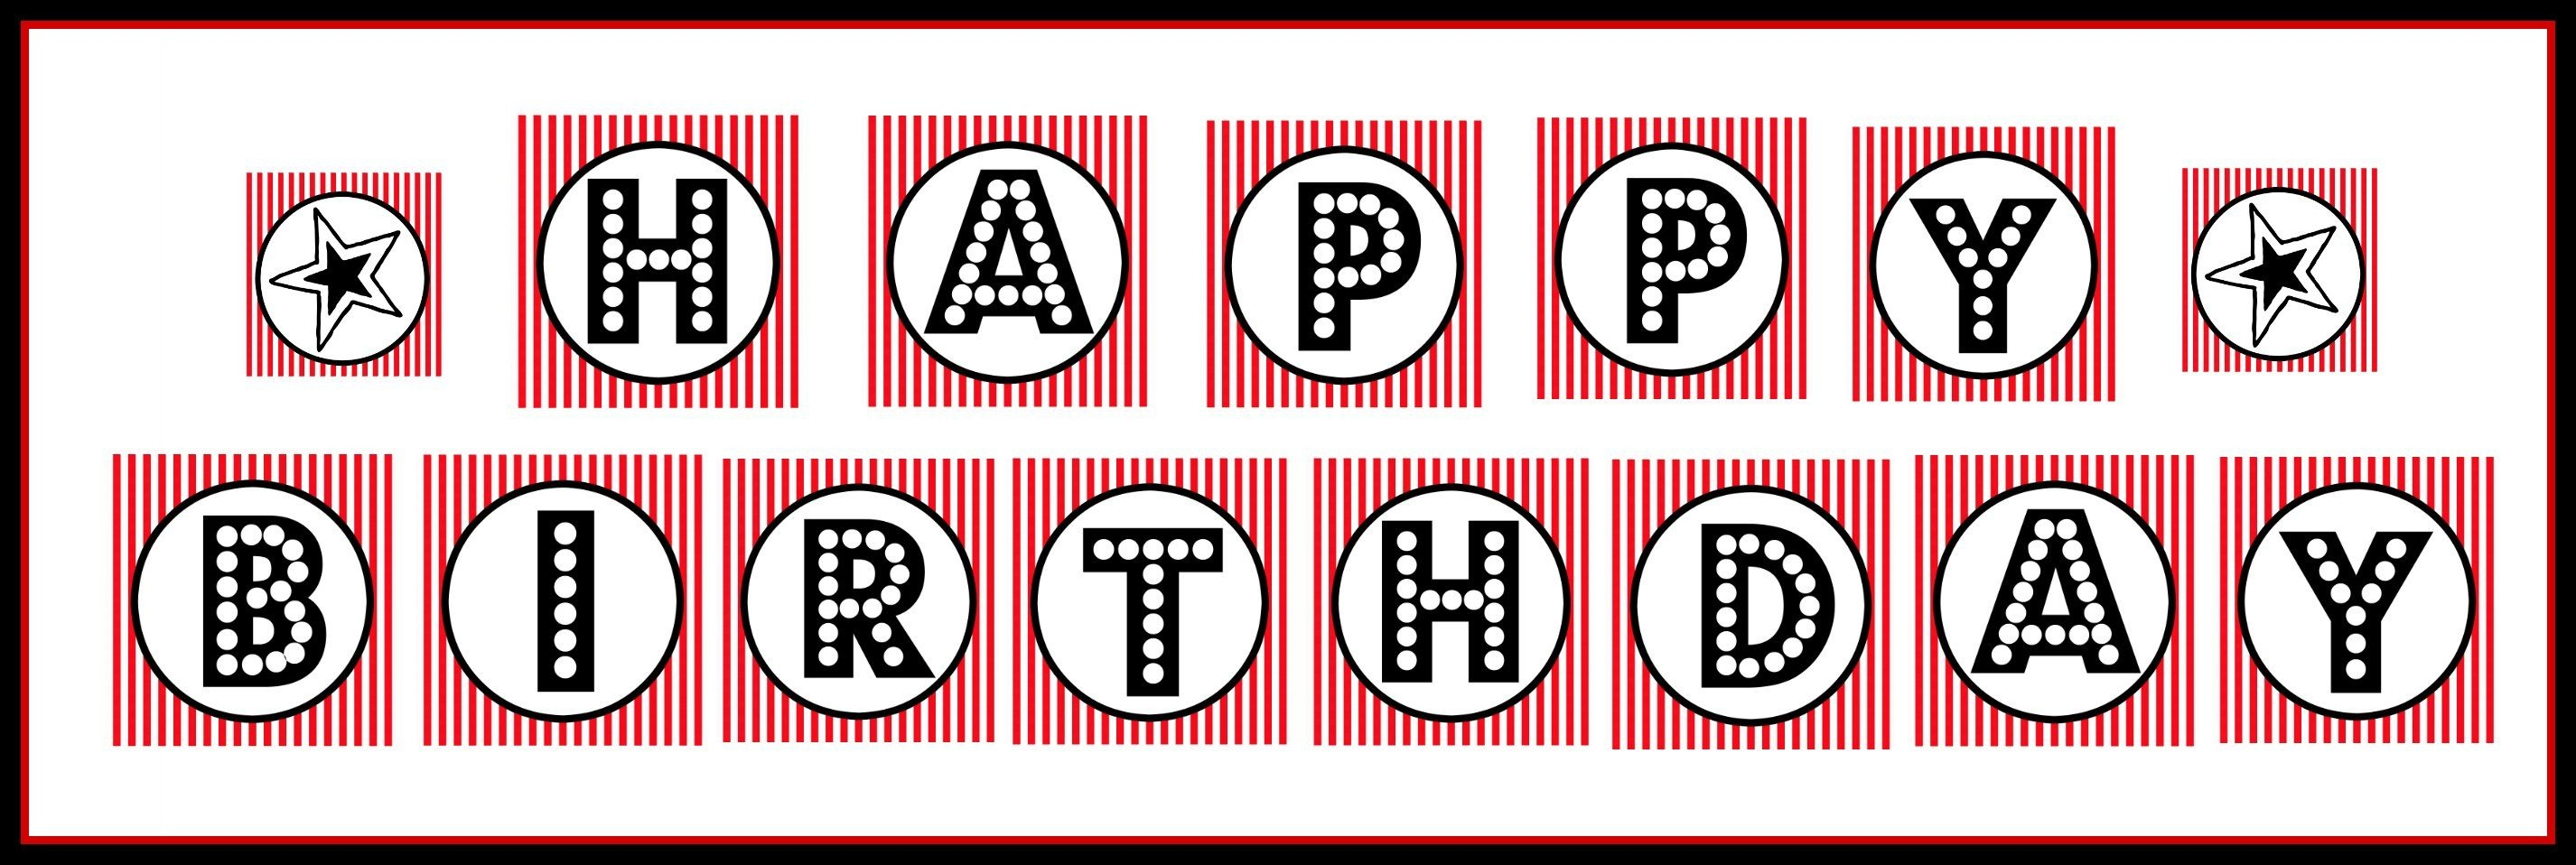 Free Printable Happy Birthday Banner Black And White | Theveliger - Diy Swank Free Printable Letters